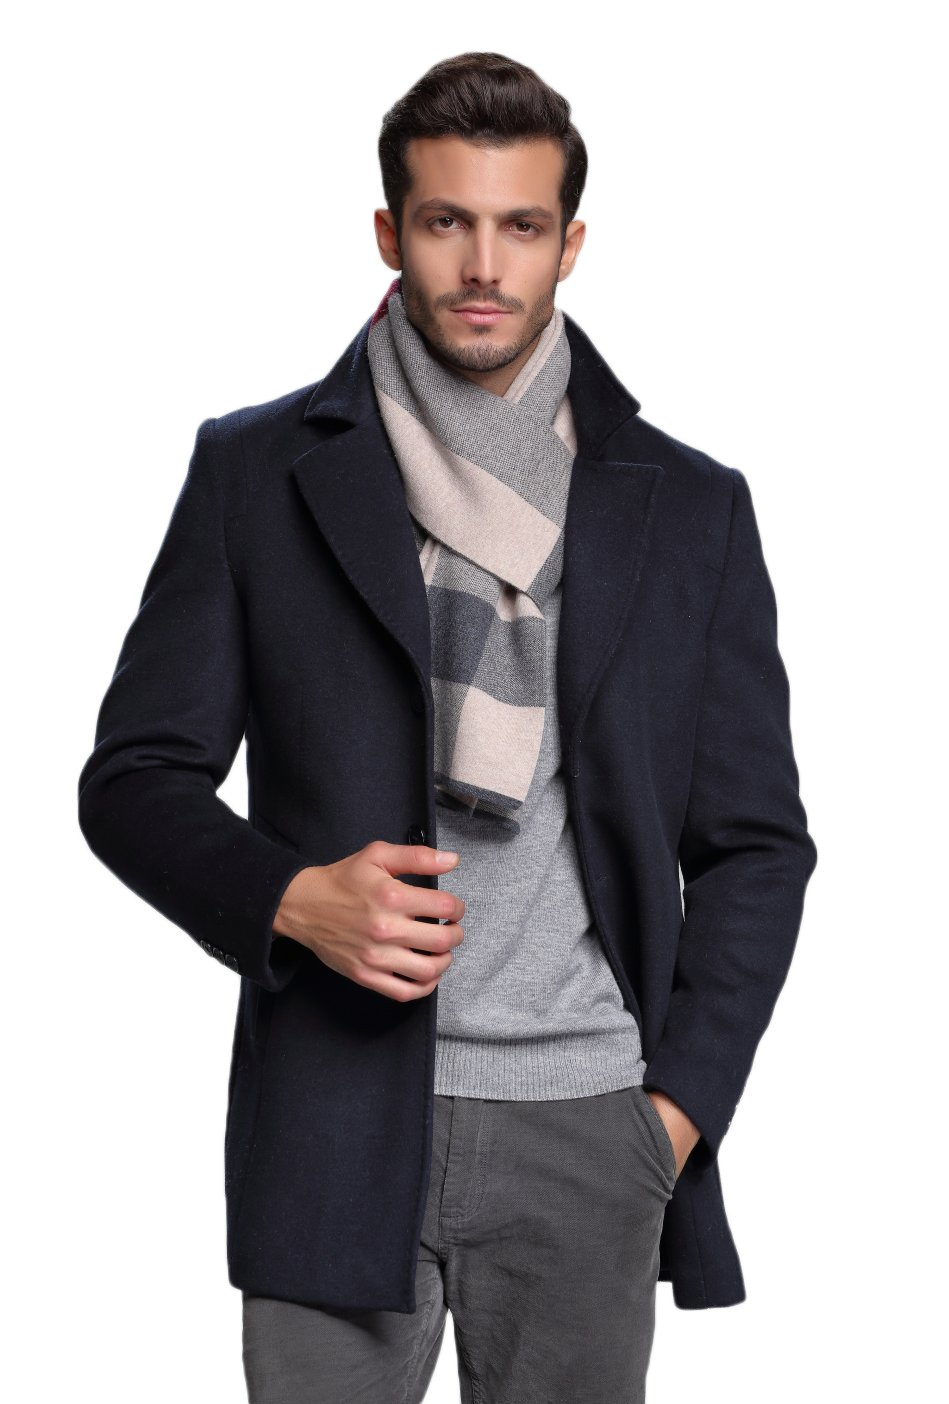 RIONA Mens Winter Cashmere Feel Australian Wool Soft Warm Knitted Scarf with Gift Box Brown